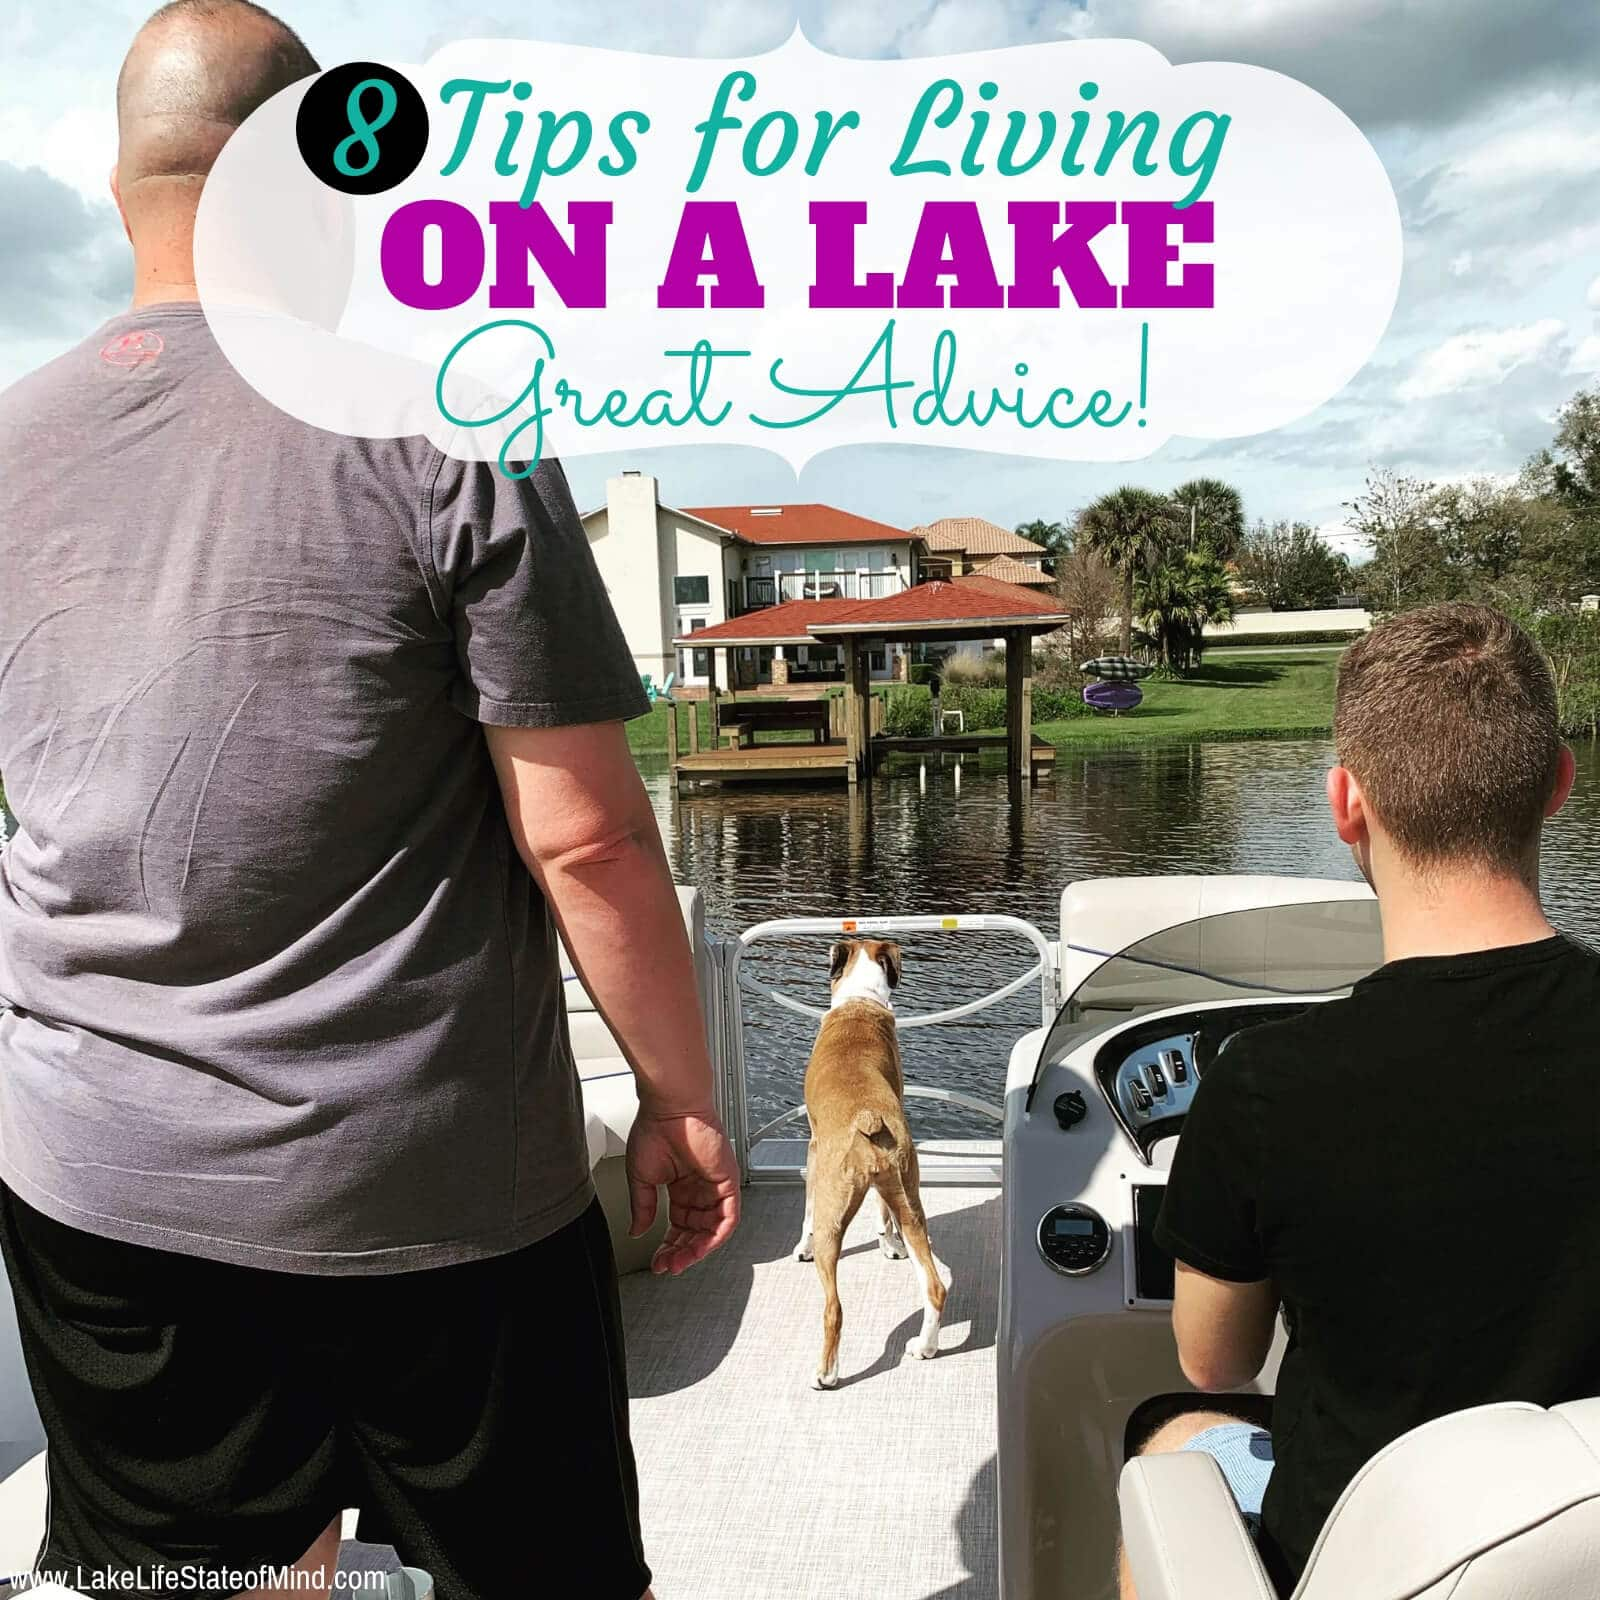 8 Tips for Living on a Lake